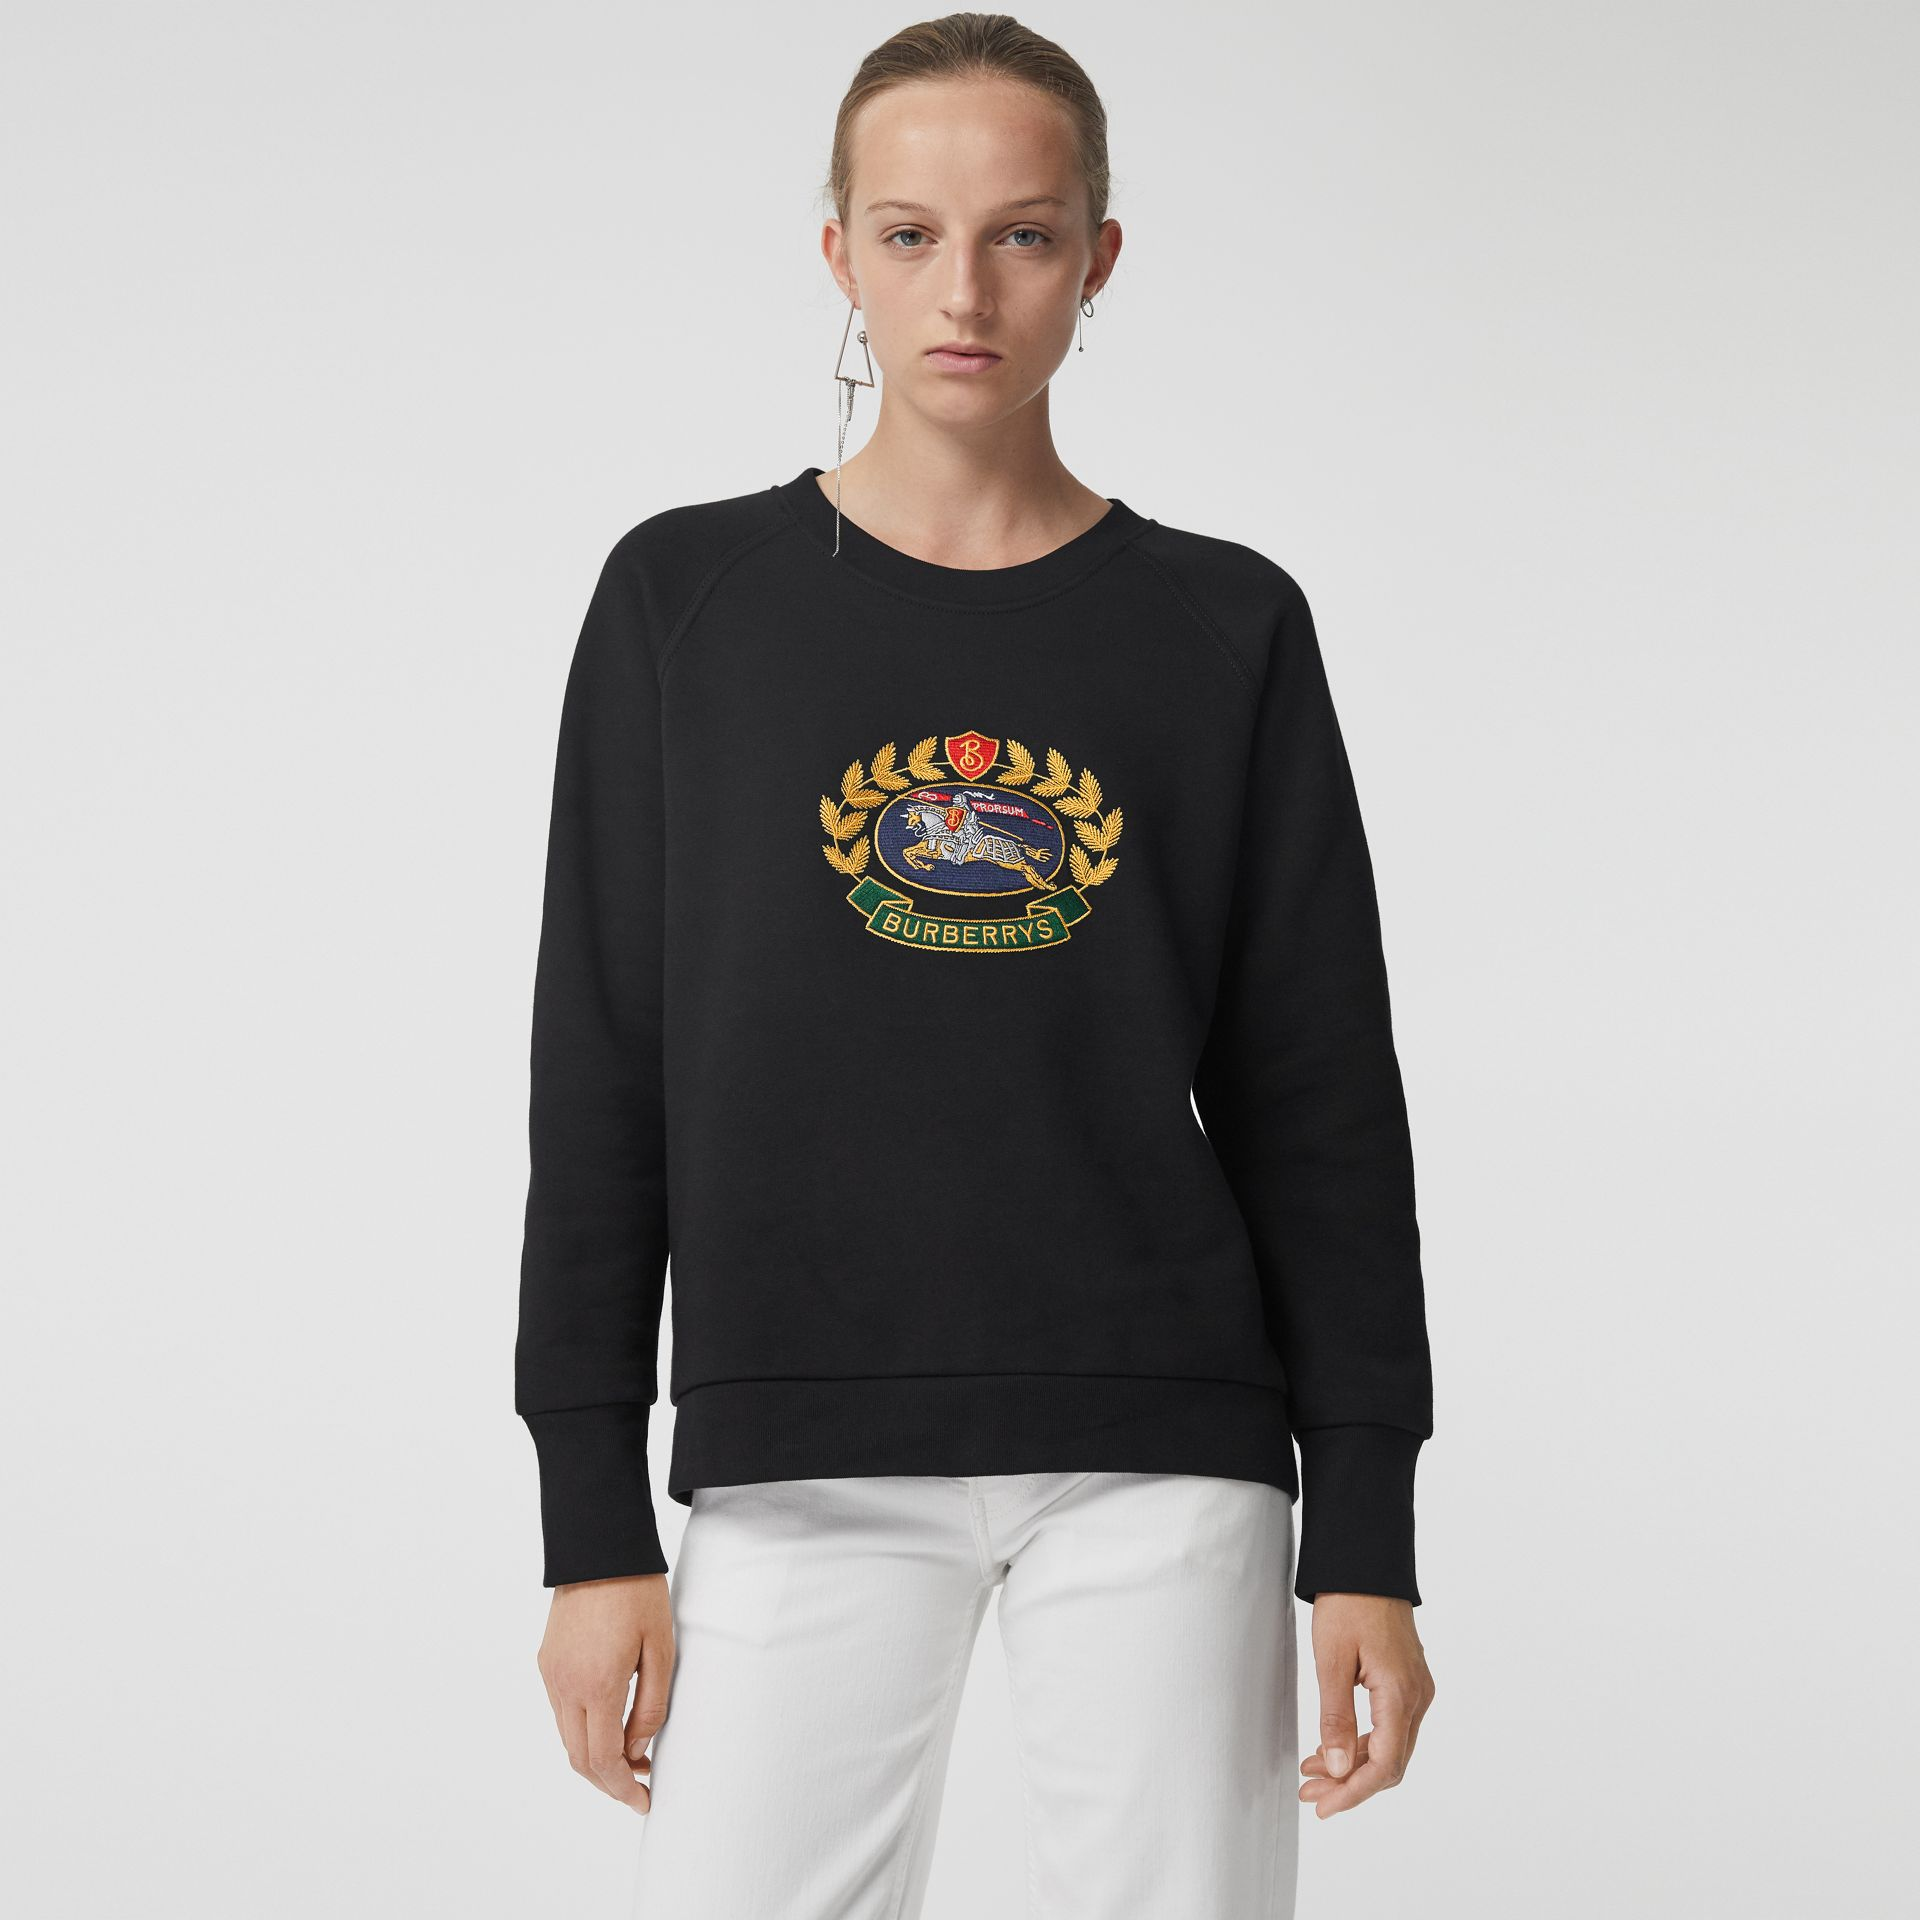 Embroidered Archive Logo Cotton Blend Sweatshirt in Black - Women | Burberry - gallery image 5